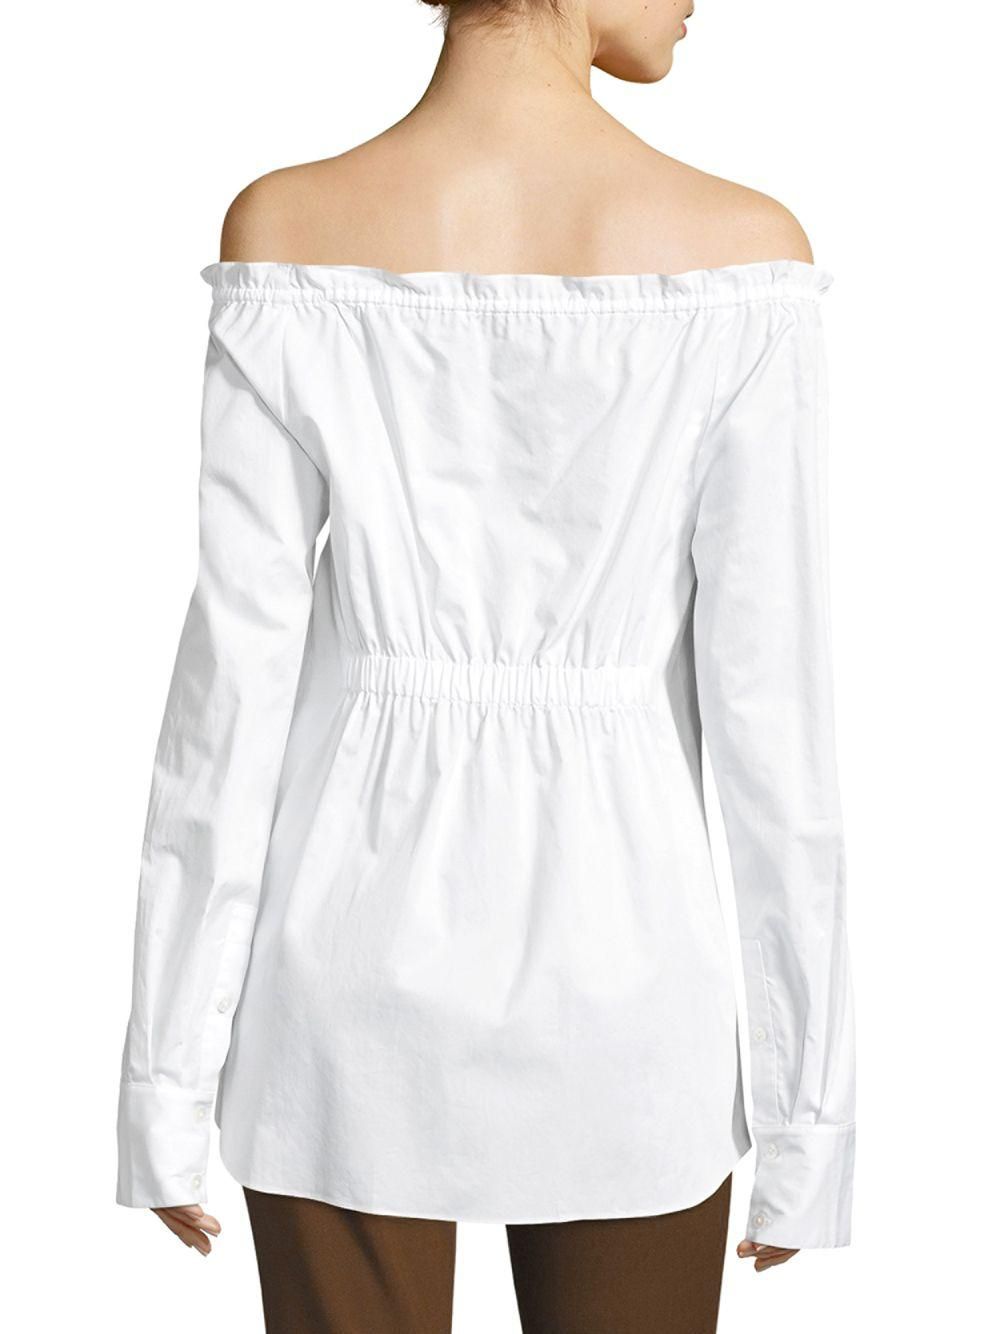 90cdf6b79c3dd3 Lyst - Tibi Ruched Off-the-shoulder Shirt in White - Save  25.362318840579704%